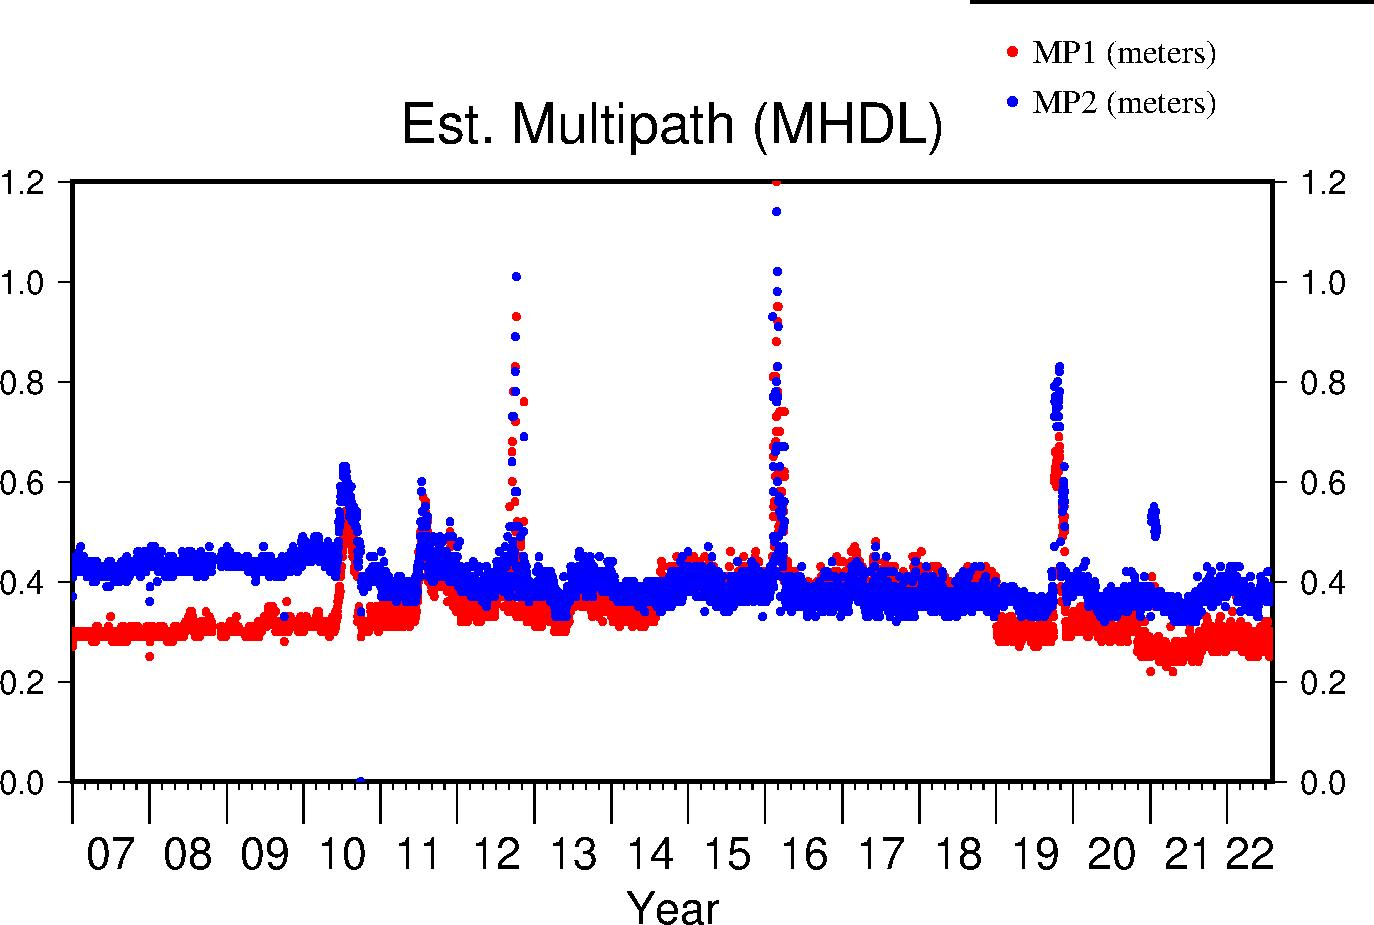 MHDL multipath lifetime